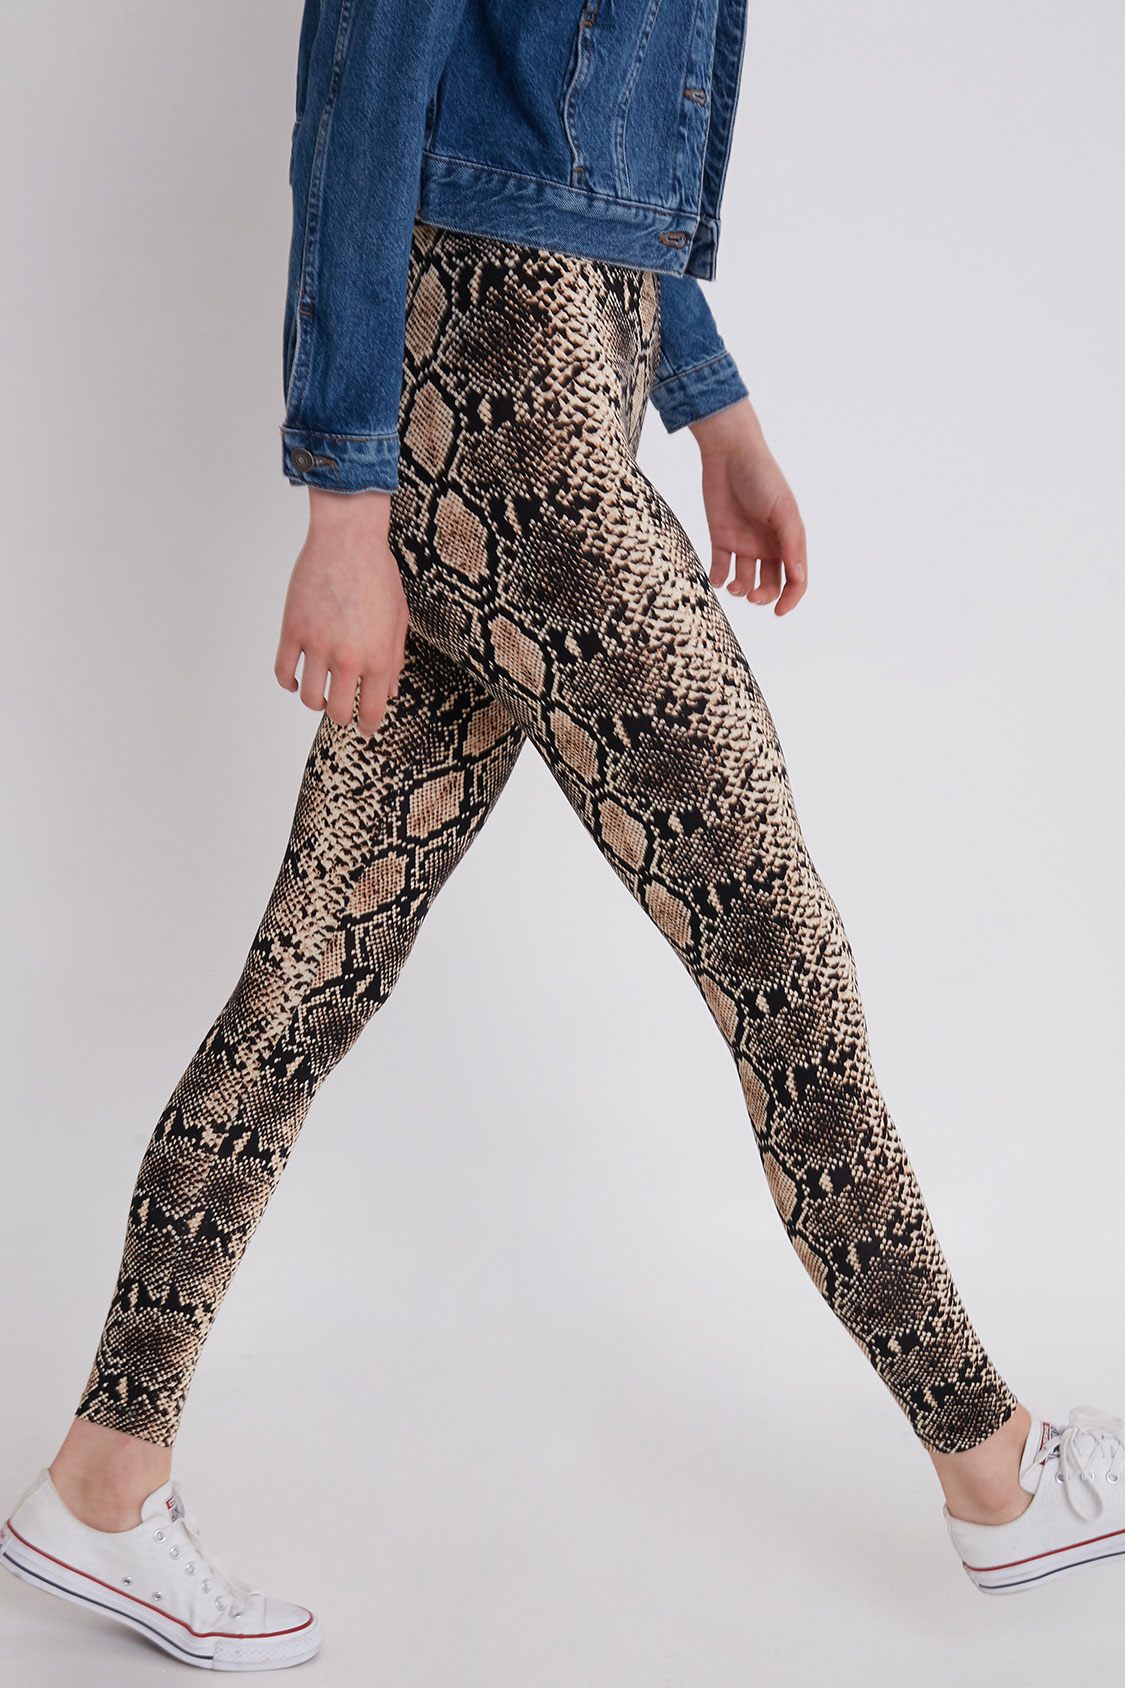 Snakeskin effect leggings